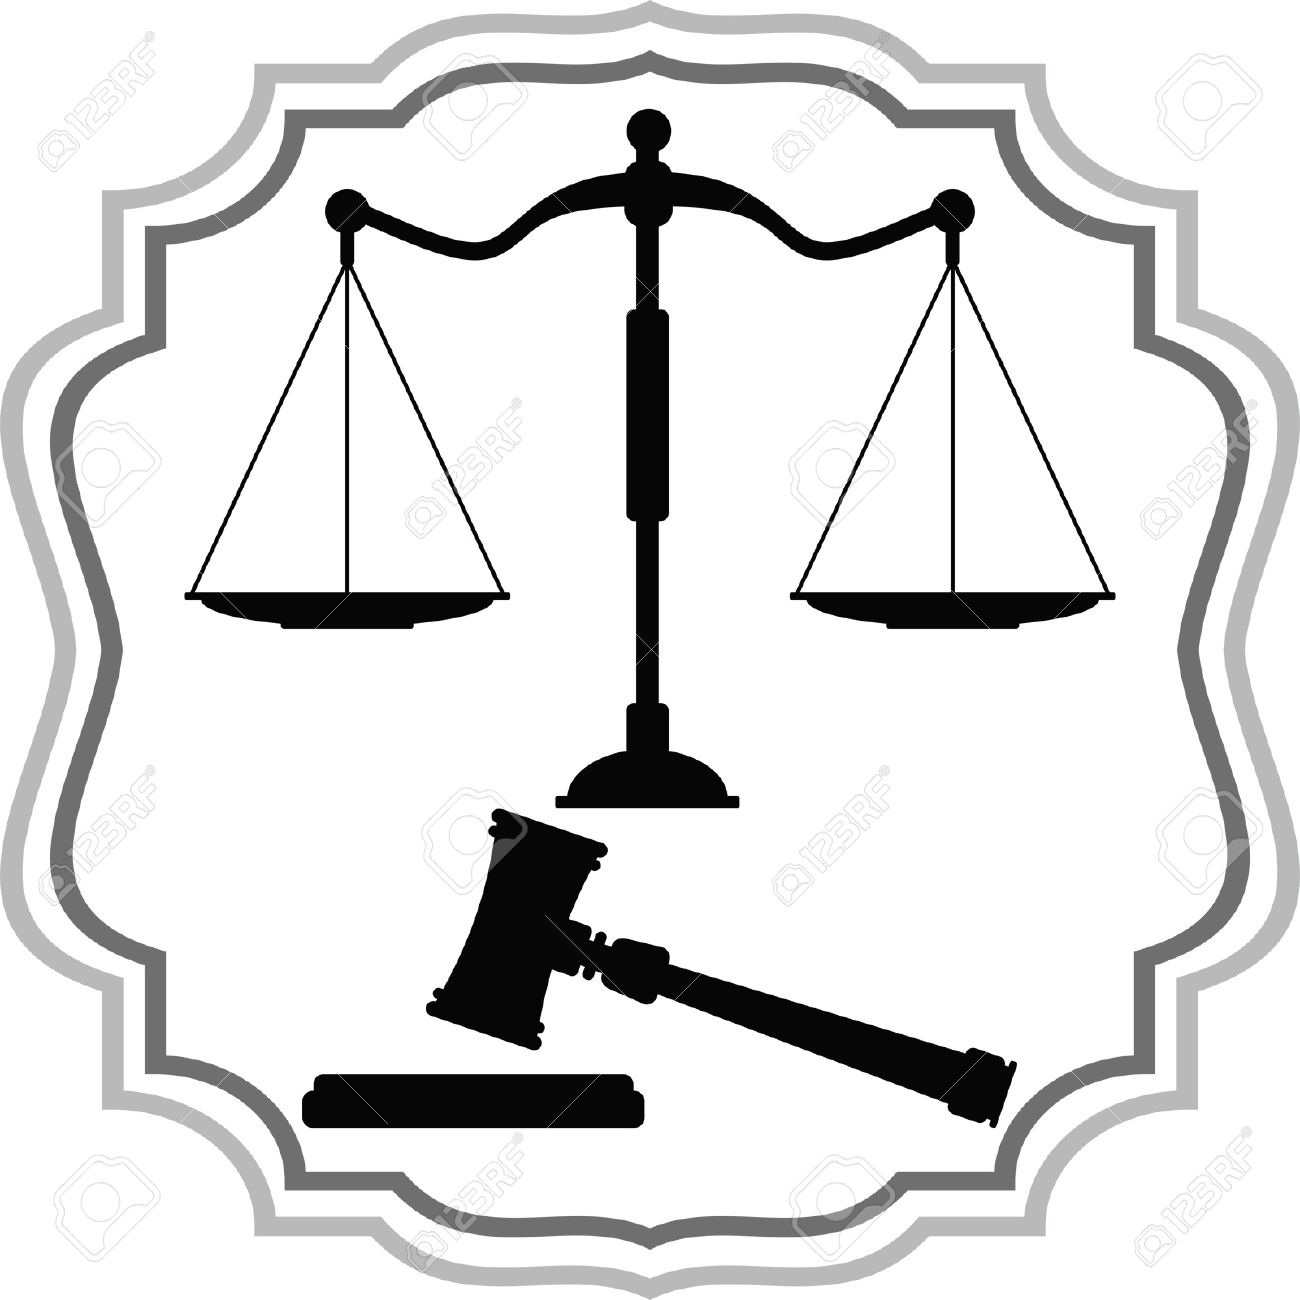 symbols of justice scales and hammer royalty free cliparts rh 123rf com Lawyer Clip Art Law Books Clip Art